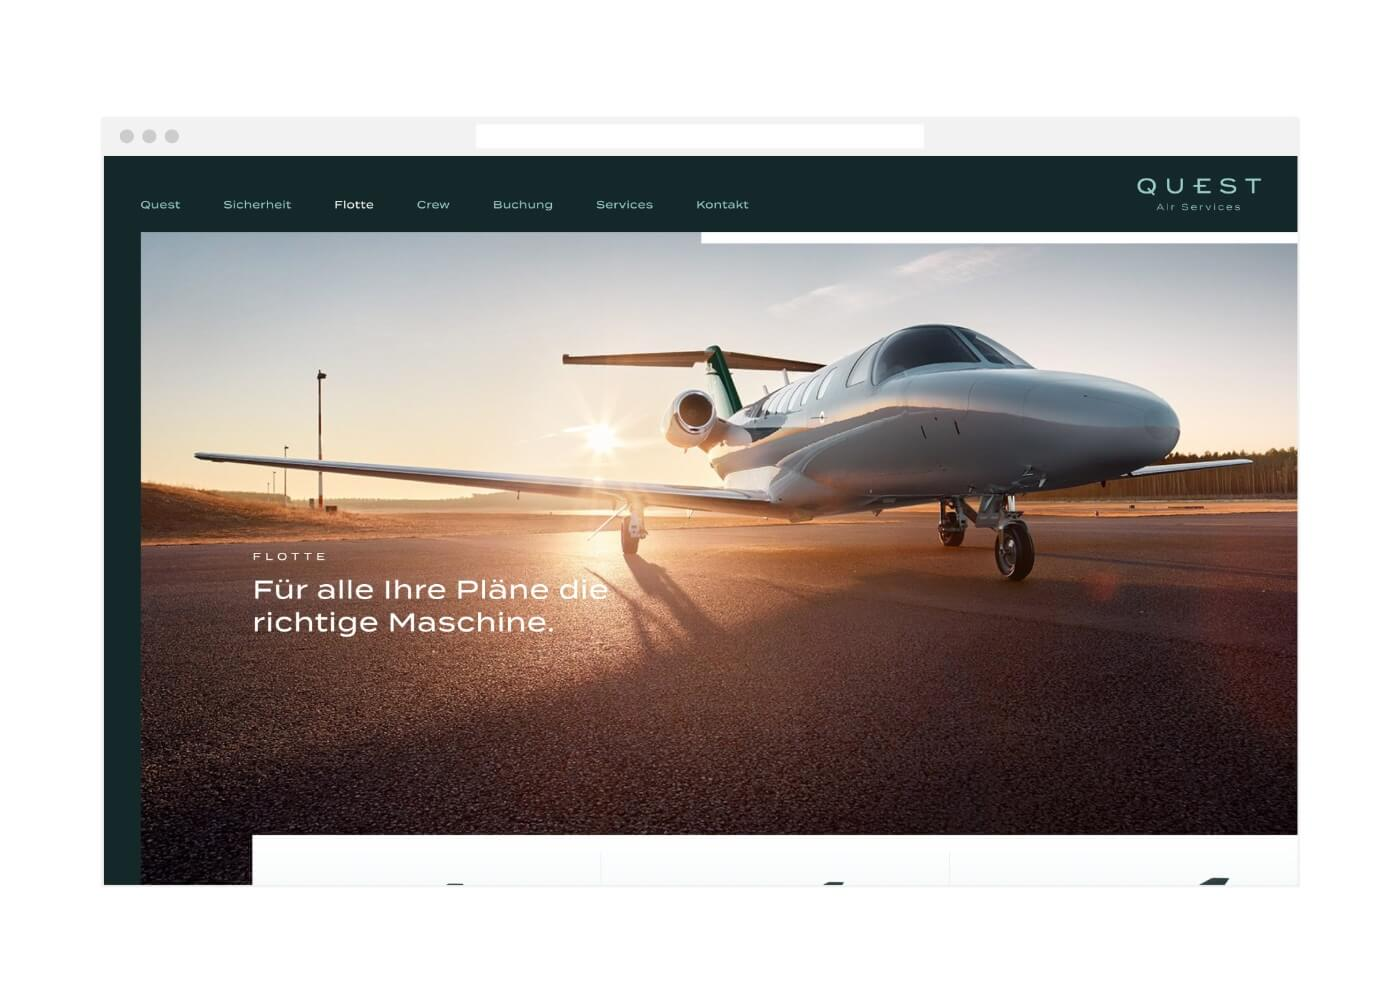 Quest Air Services Webdesign Startseite